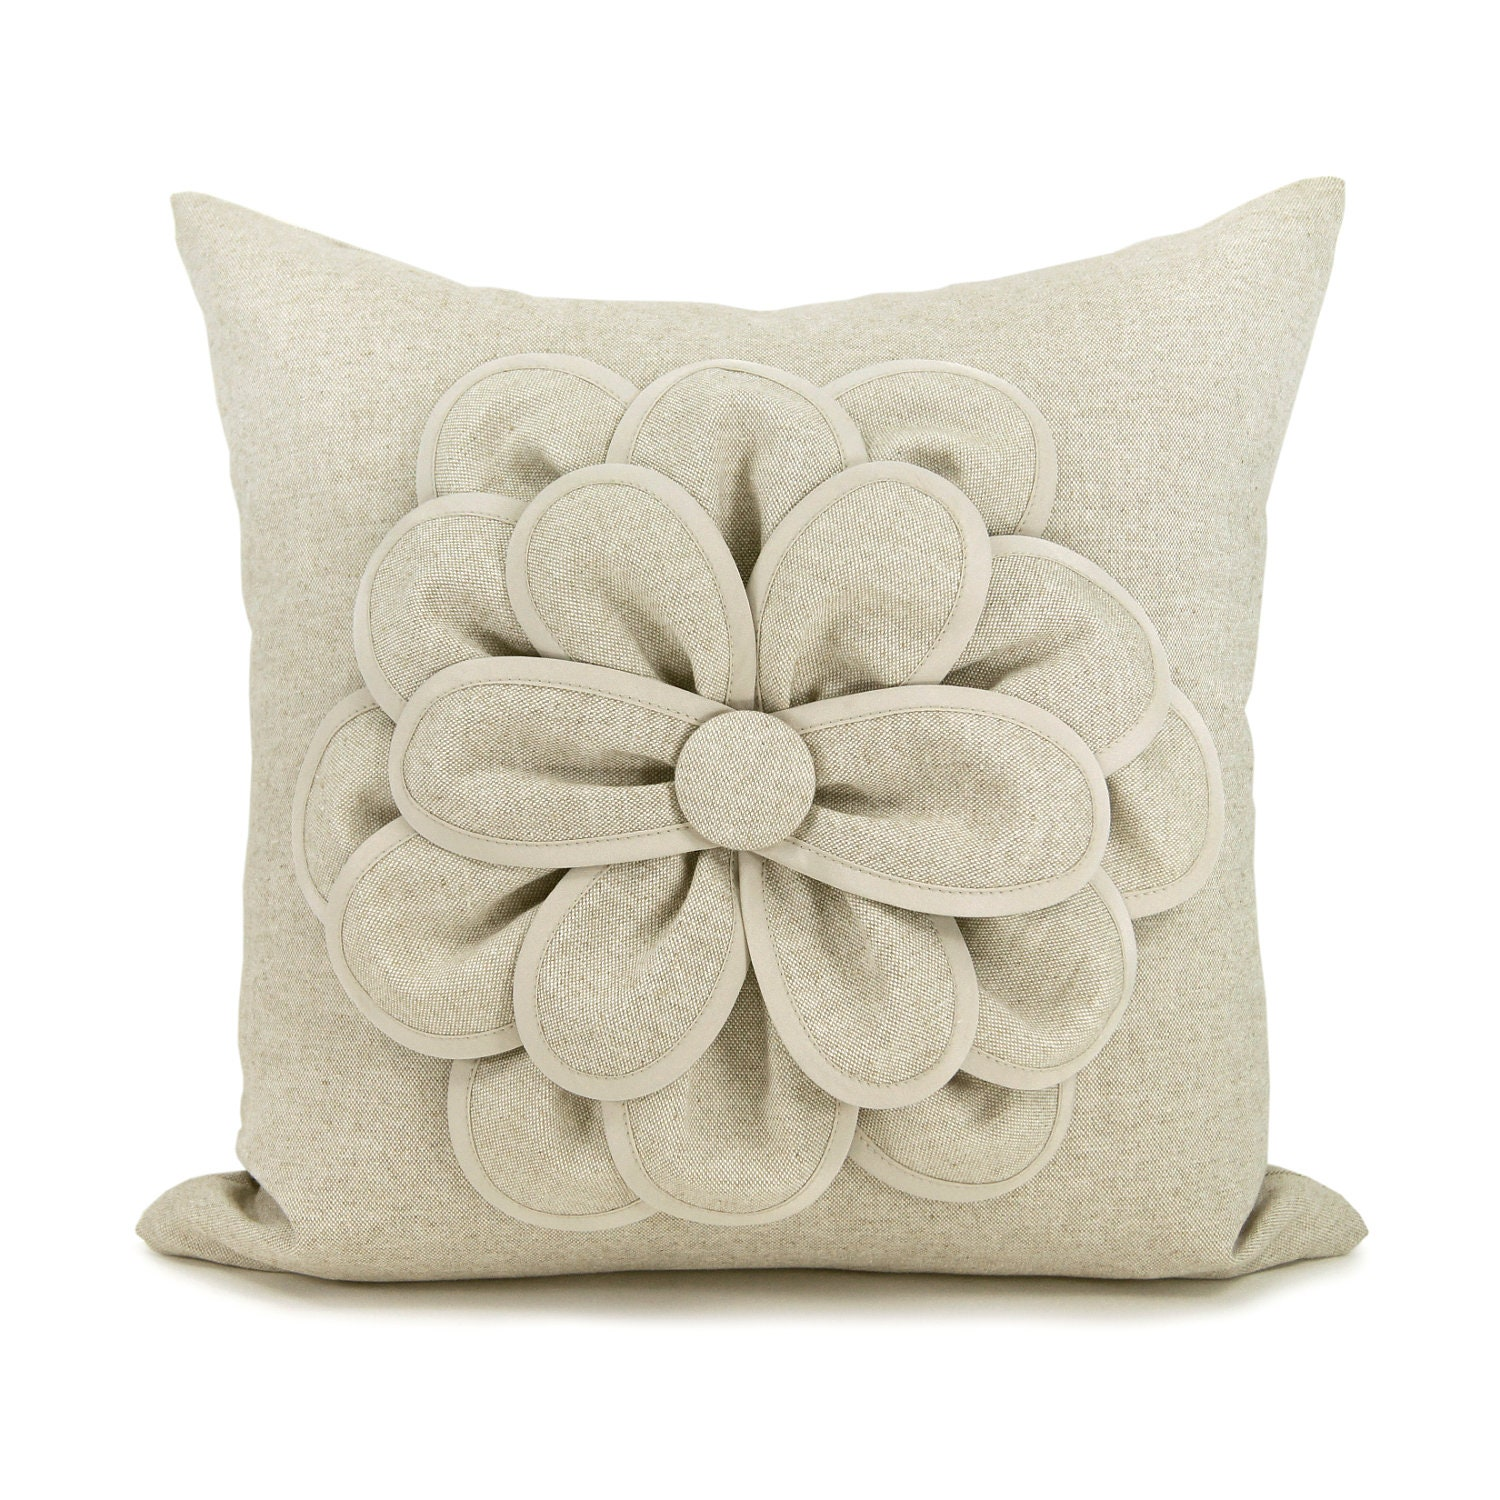 Decorative Pillows Etsy : 16x16 Decorative Pillow Cover Flower Pillow Cover Natural